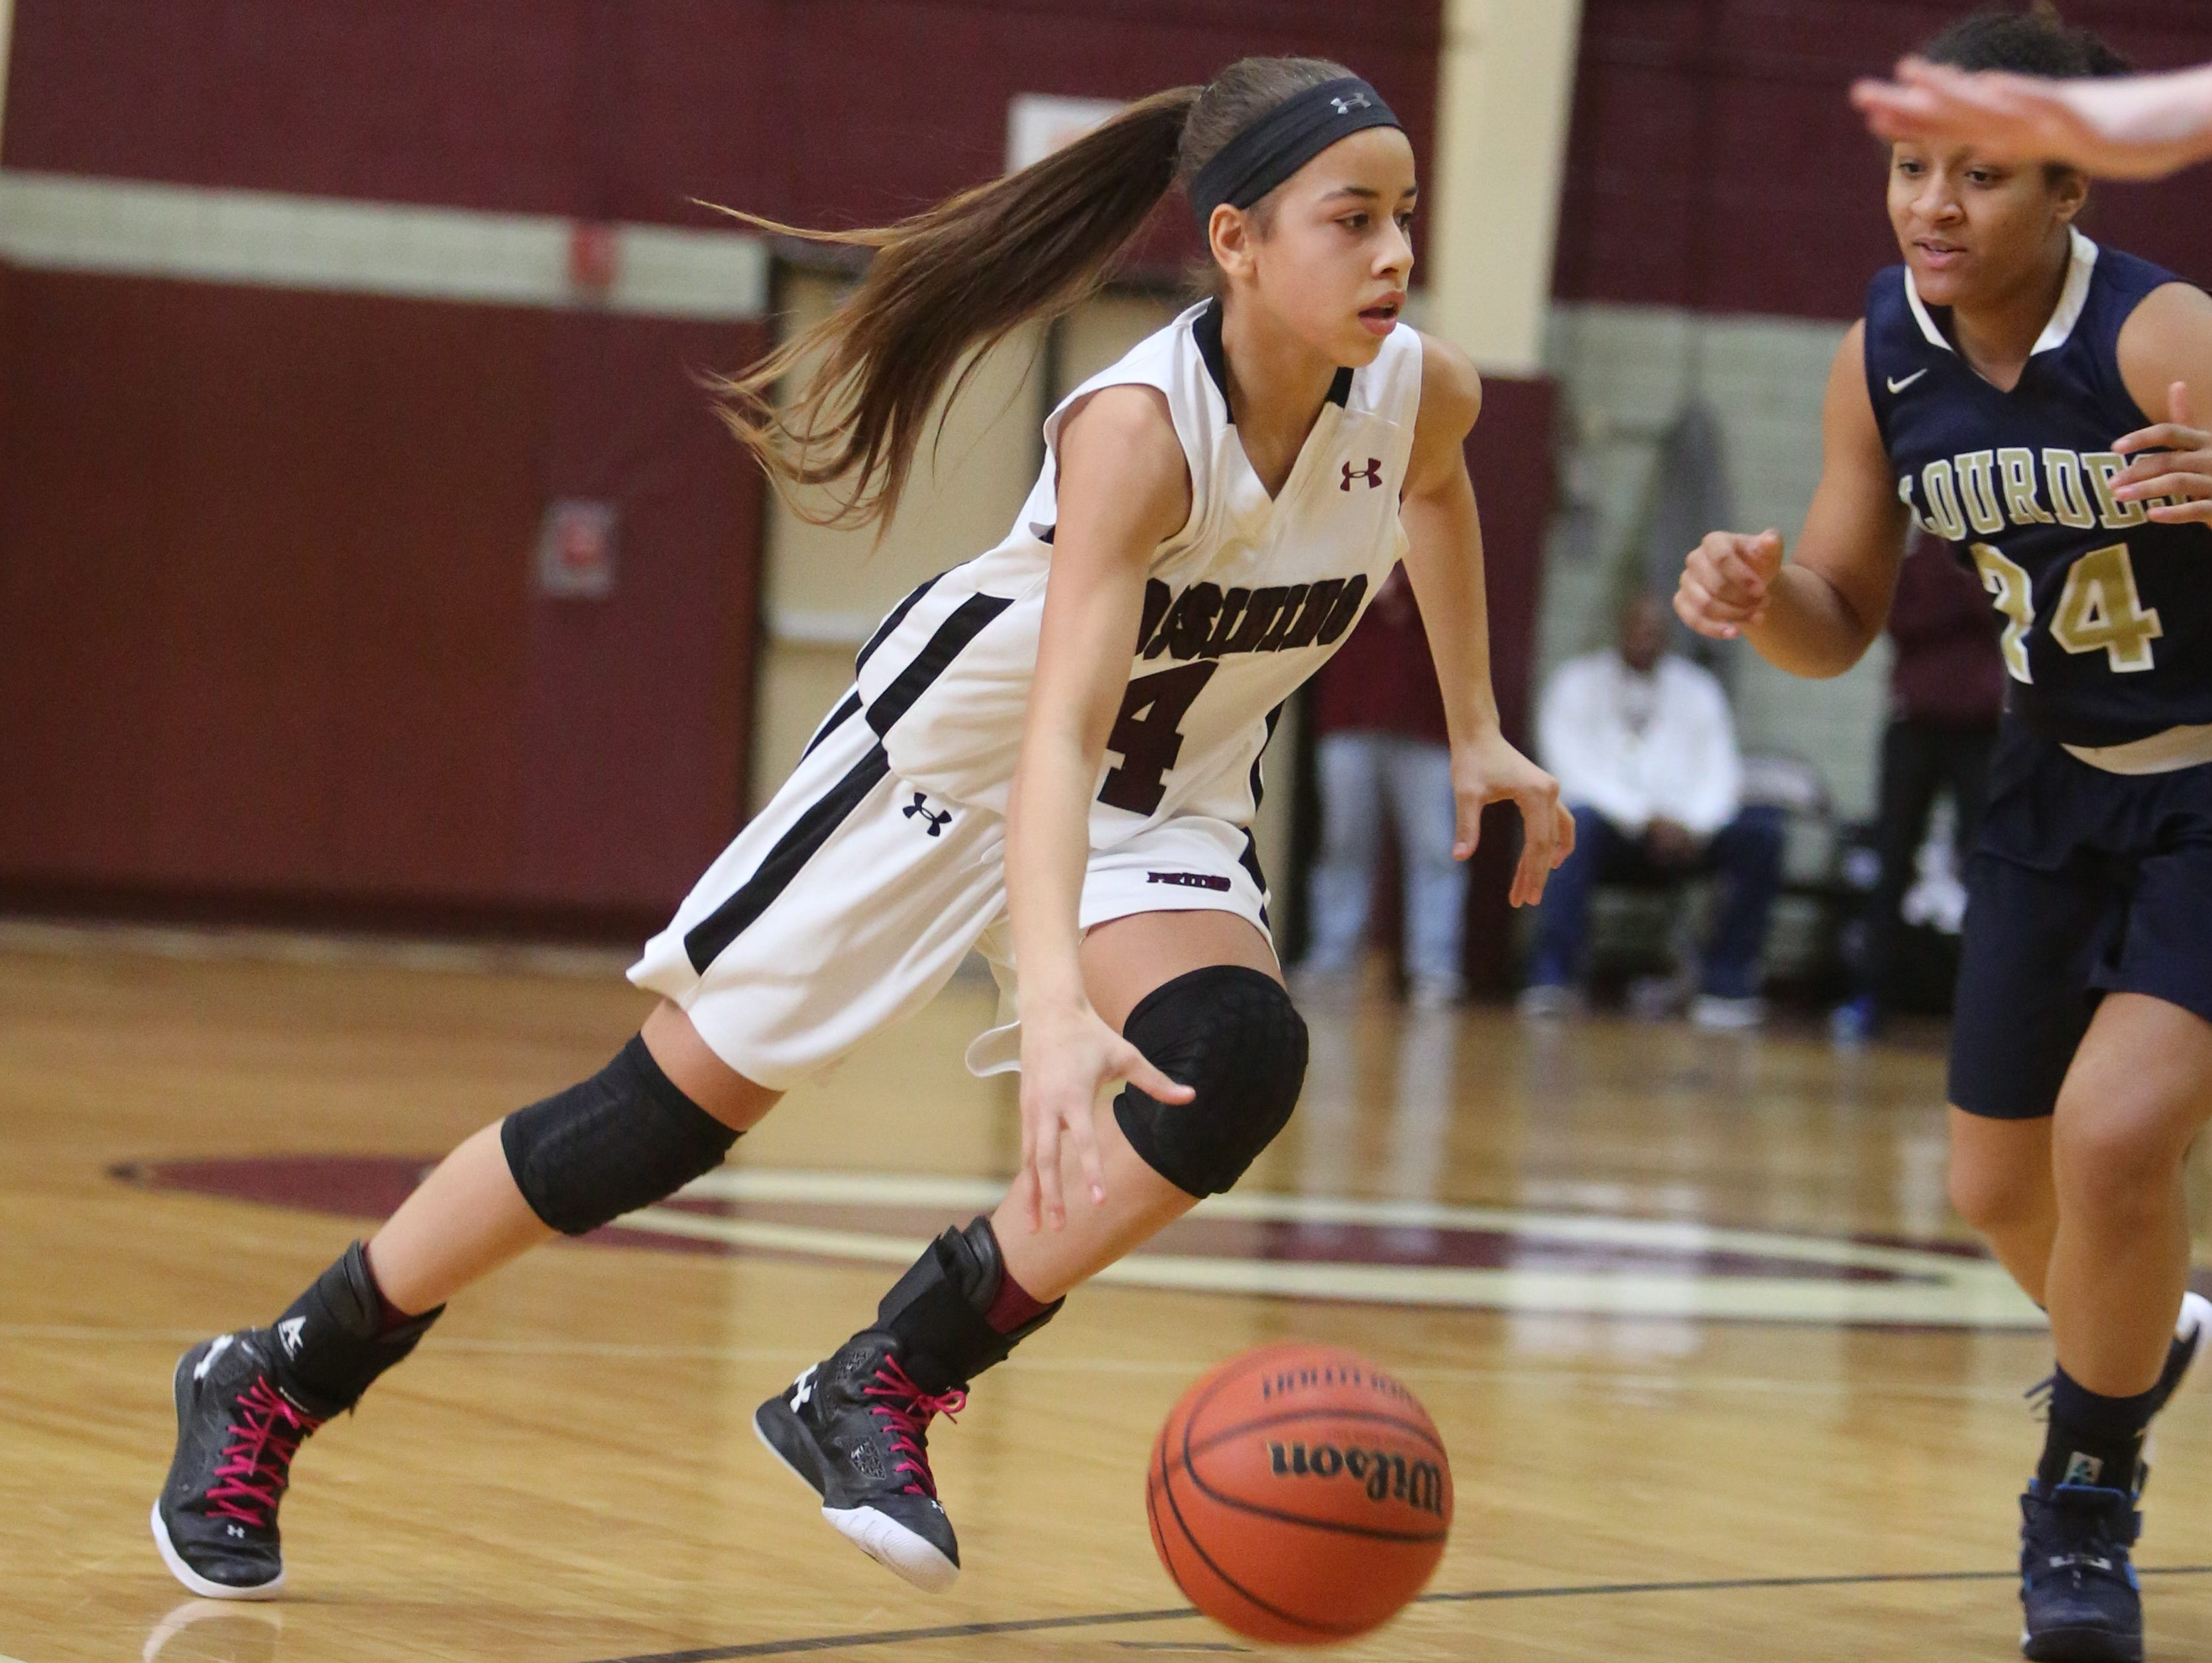 Ossining's Jaida Strippoli move the ball in front of Our Lady of Lourdes' Katie Clarke during their game in Ossining, Feb. 20, 2016. Ossining beat Lourdes, 90-27.